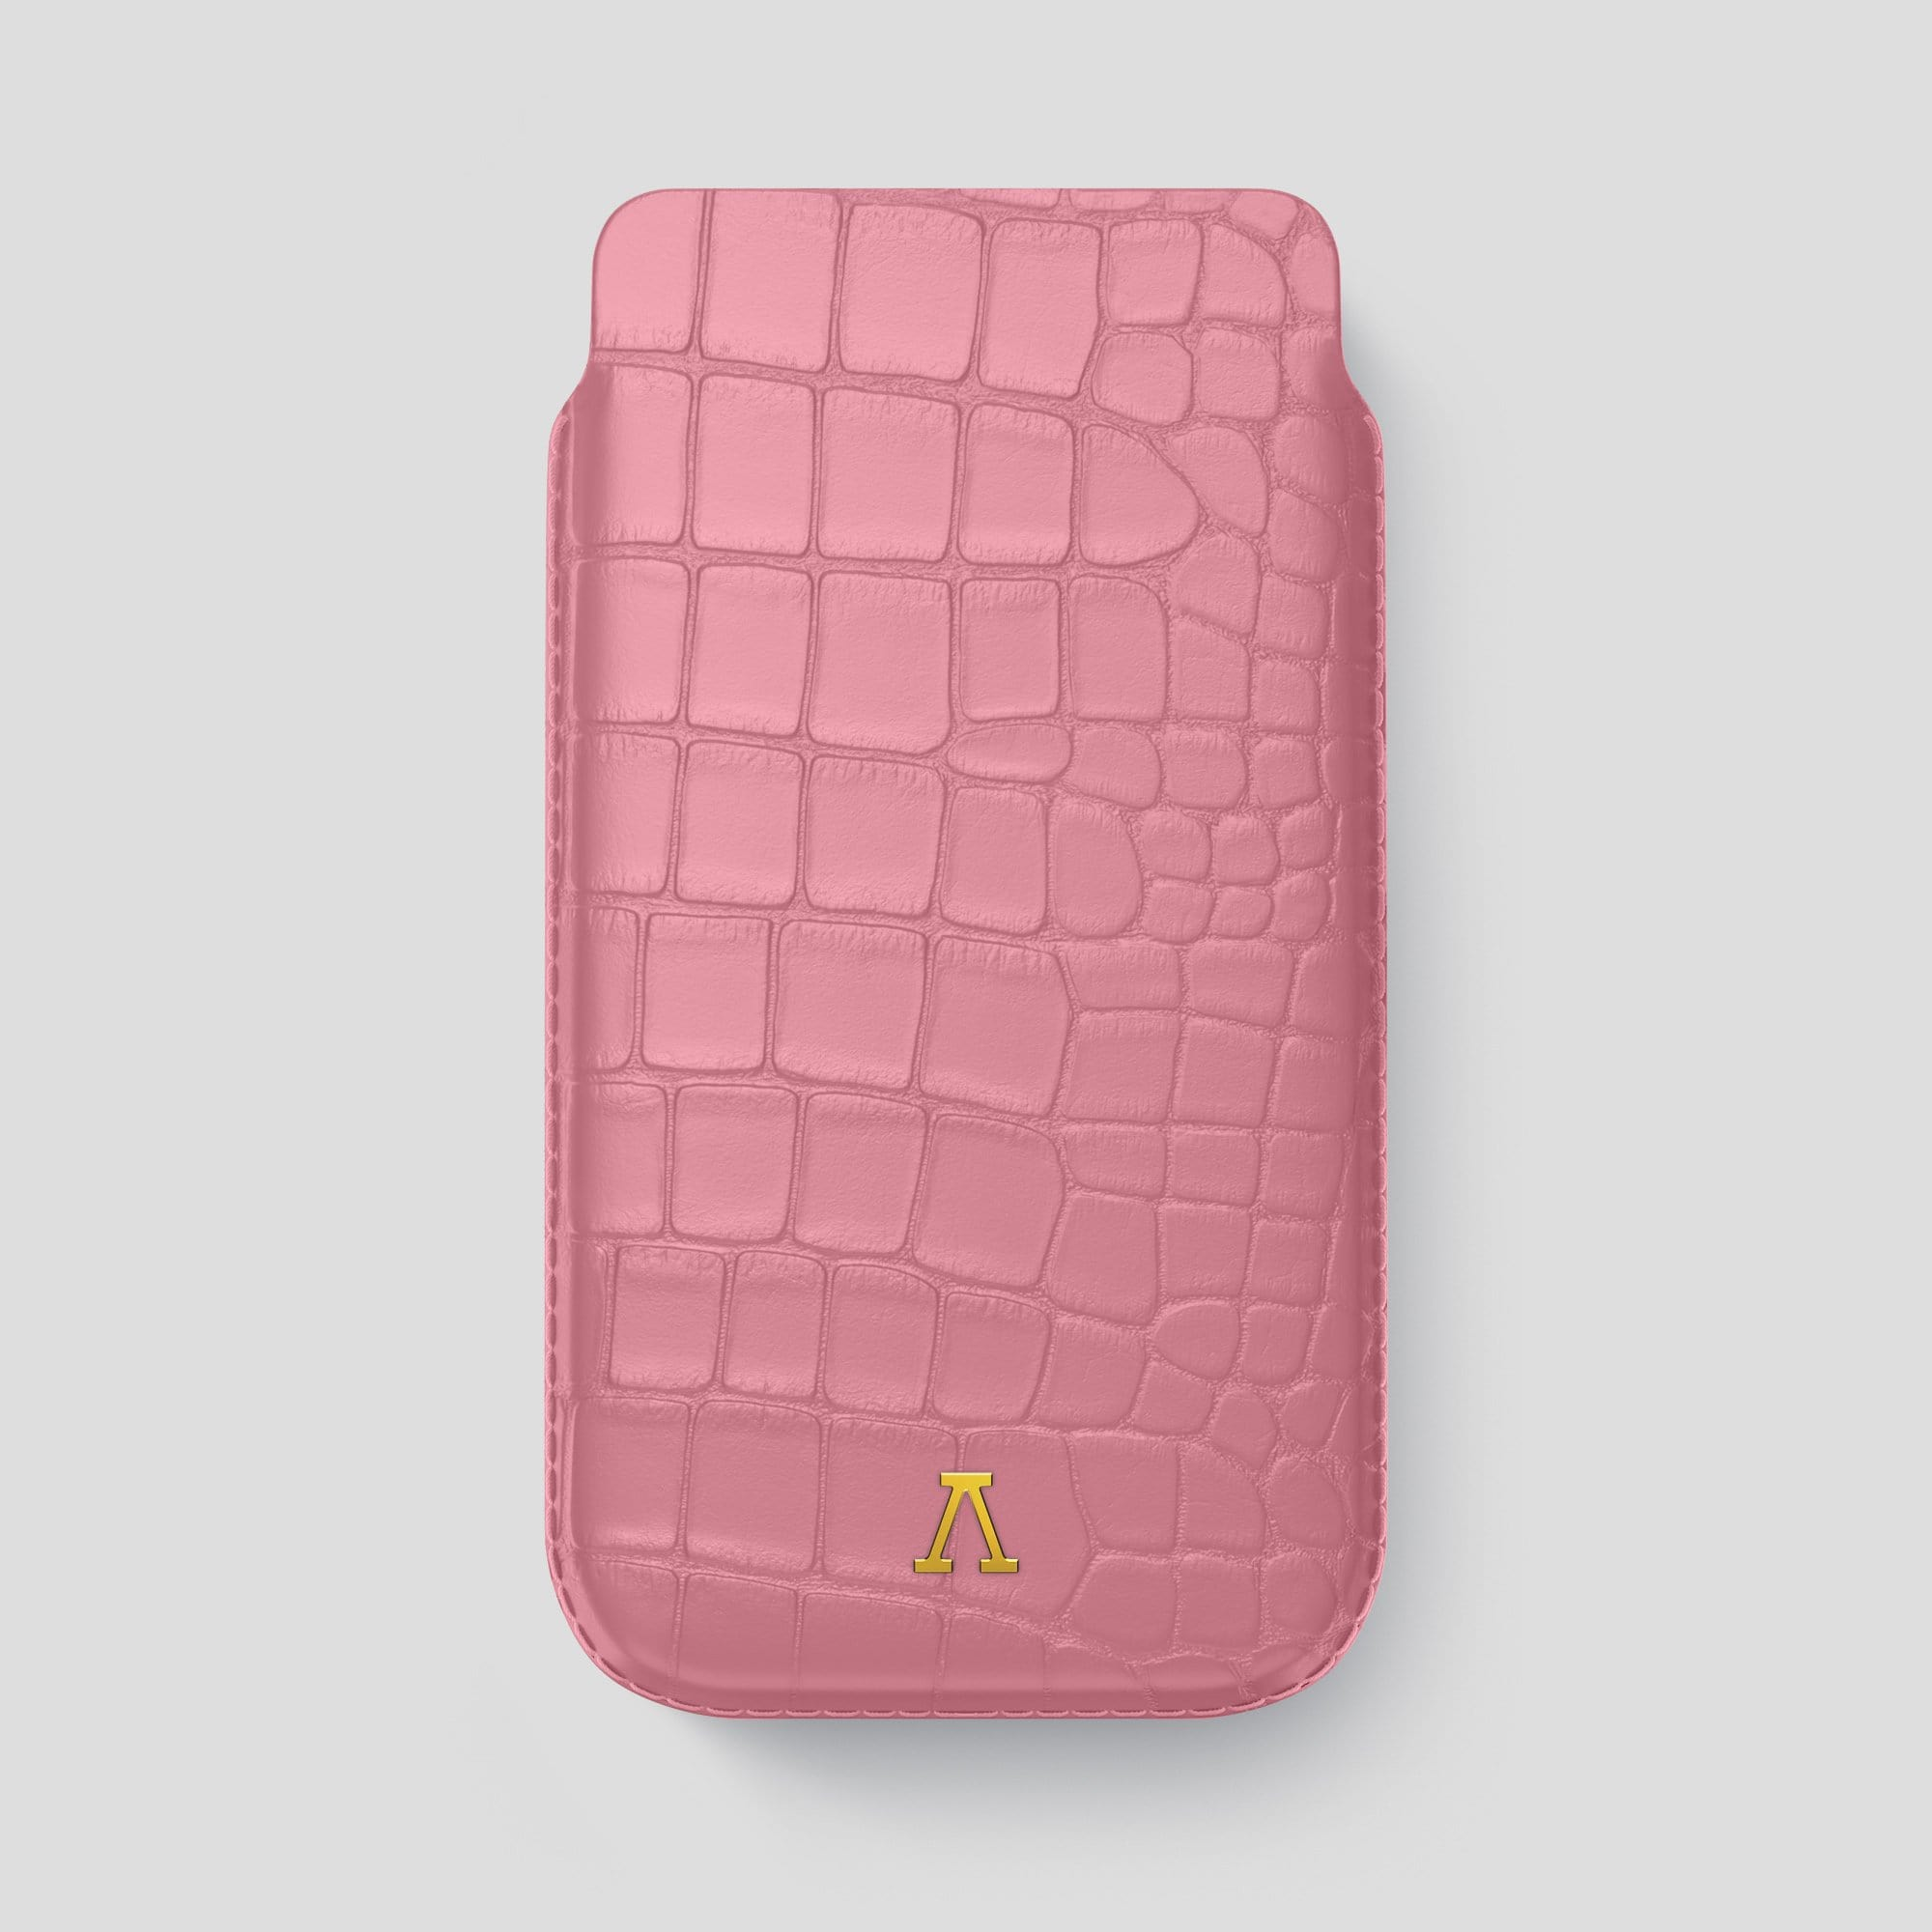 iPhone 12 Pro Max Pouch Case Alligator